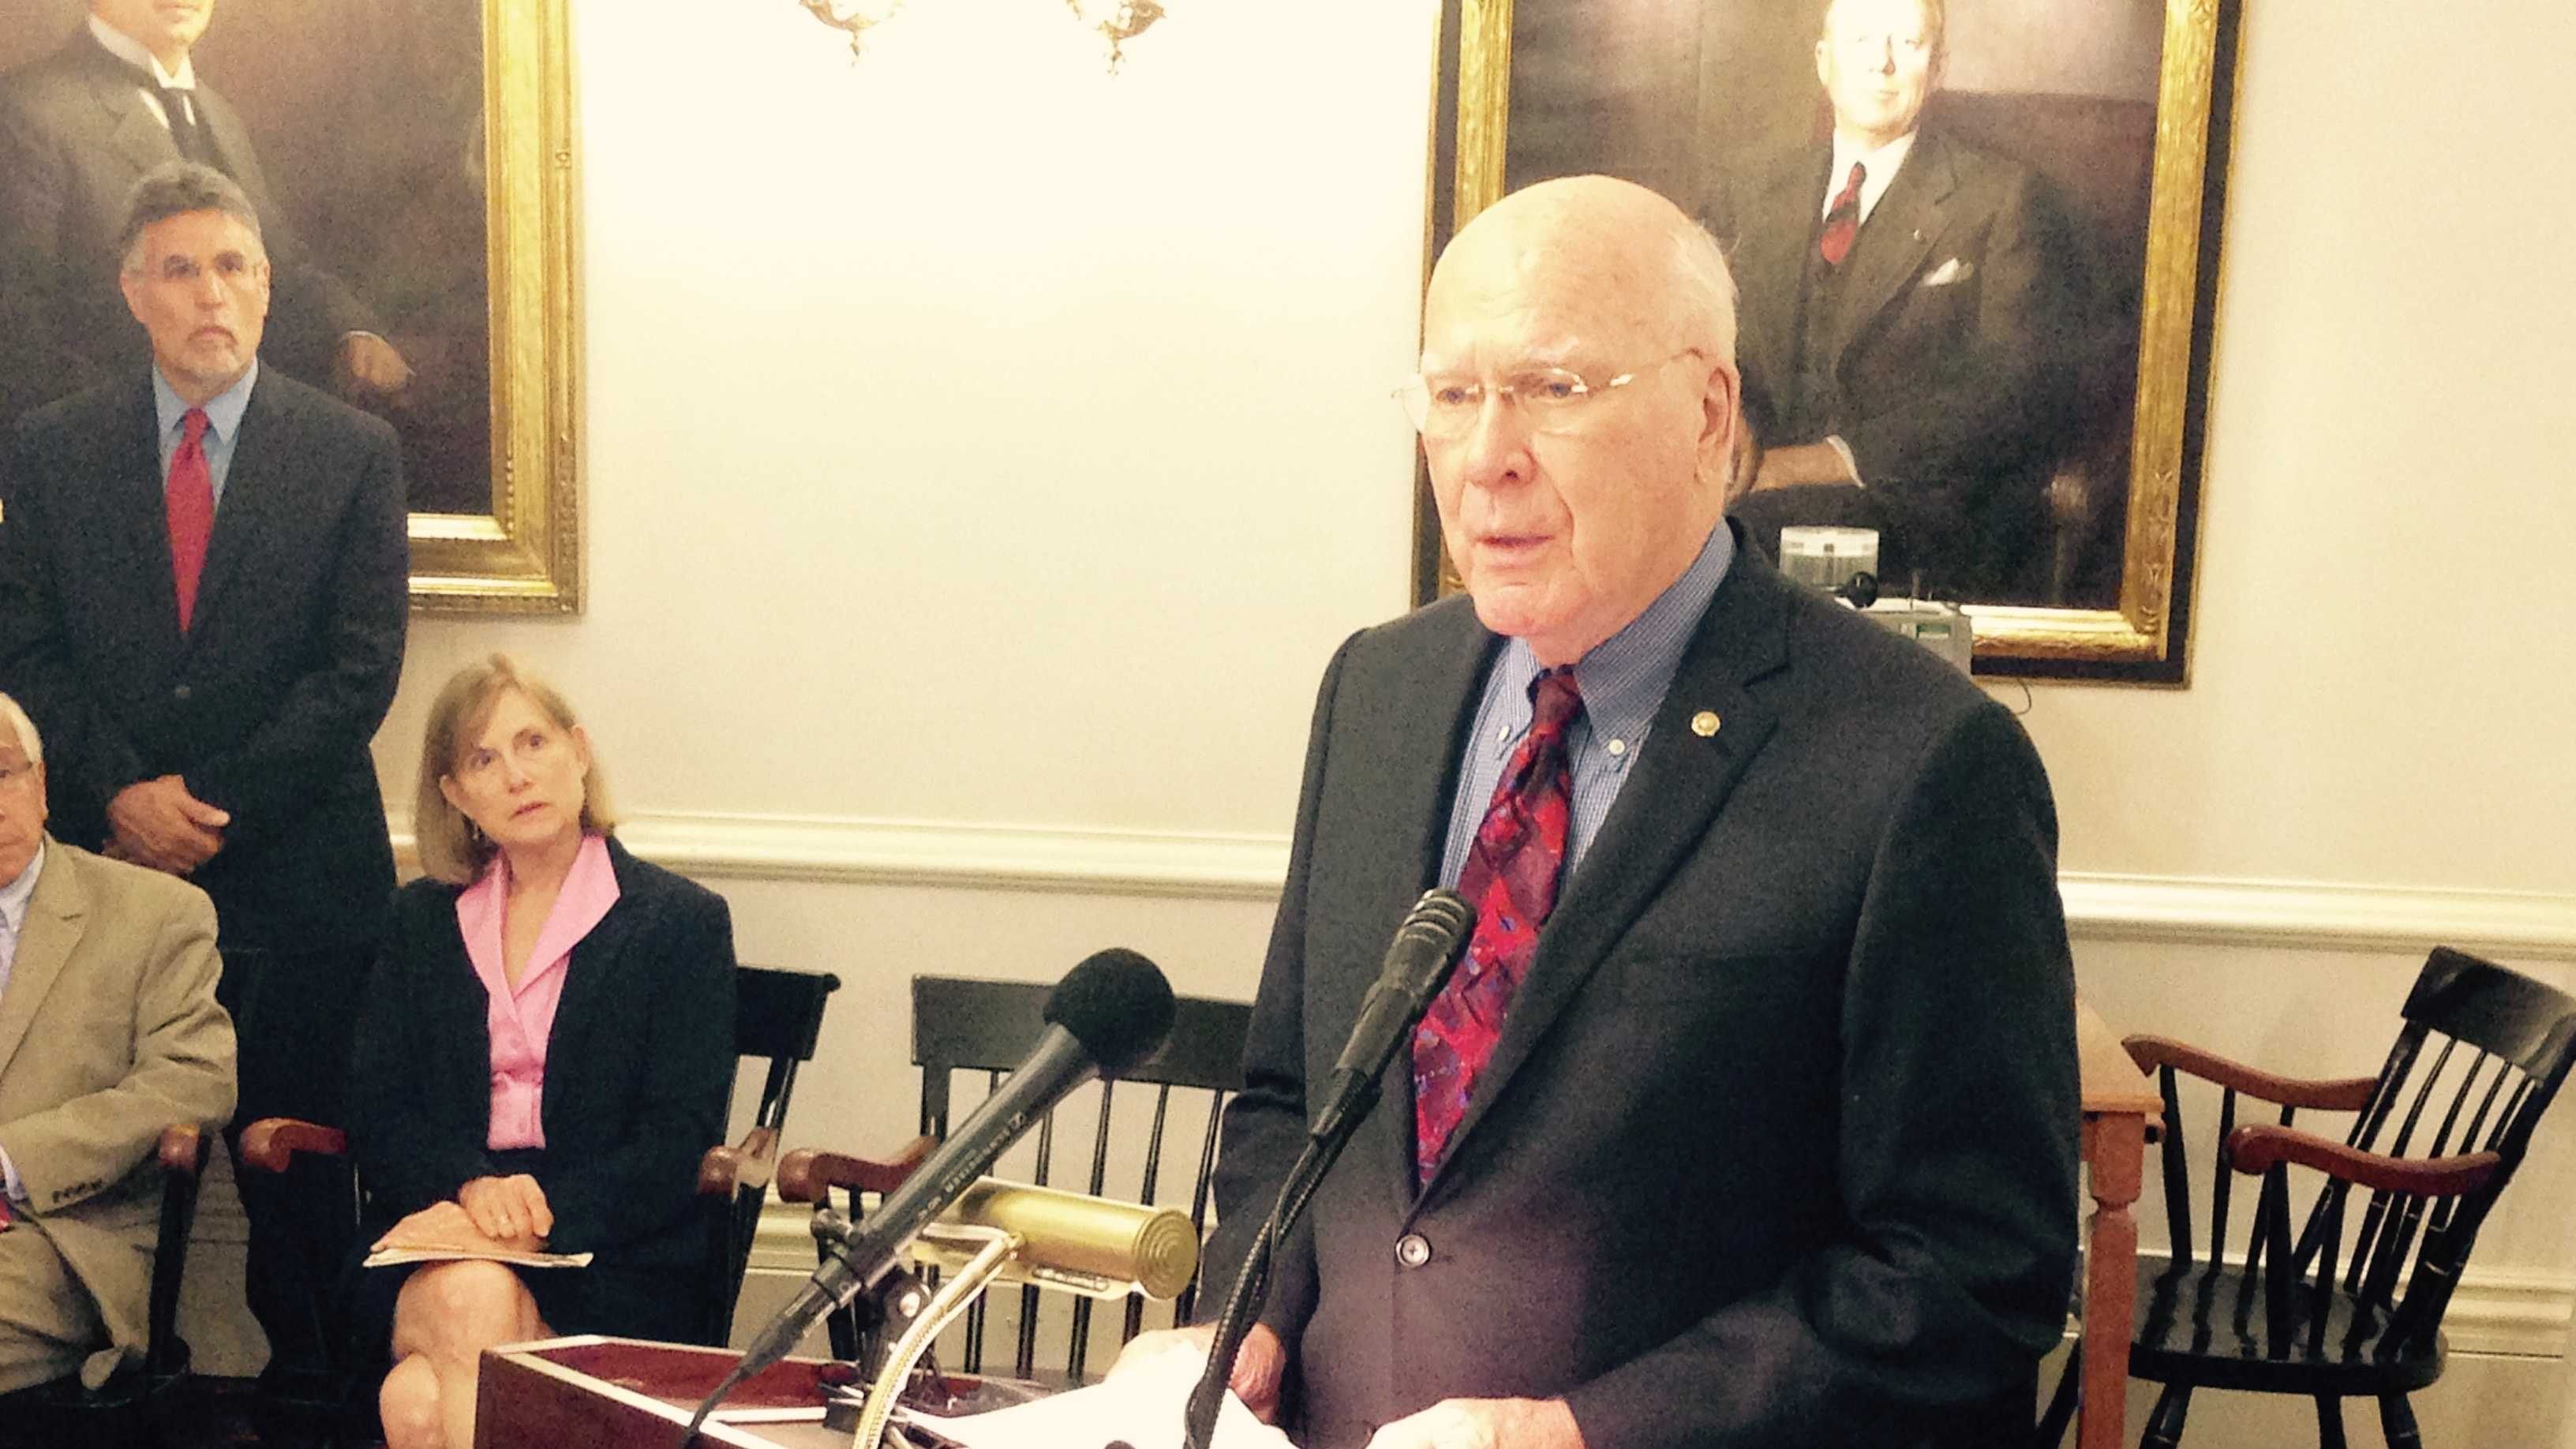 U.S. Sen. Patrick Leahy at the Statehouse Monday.